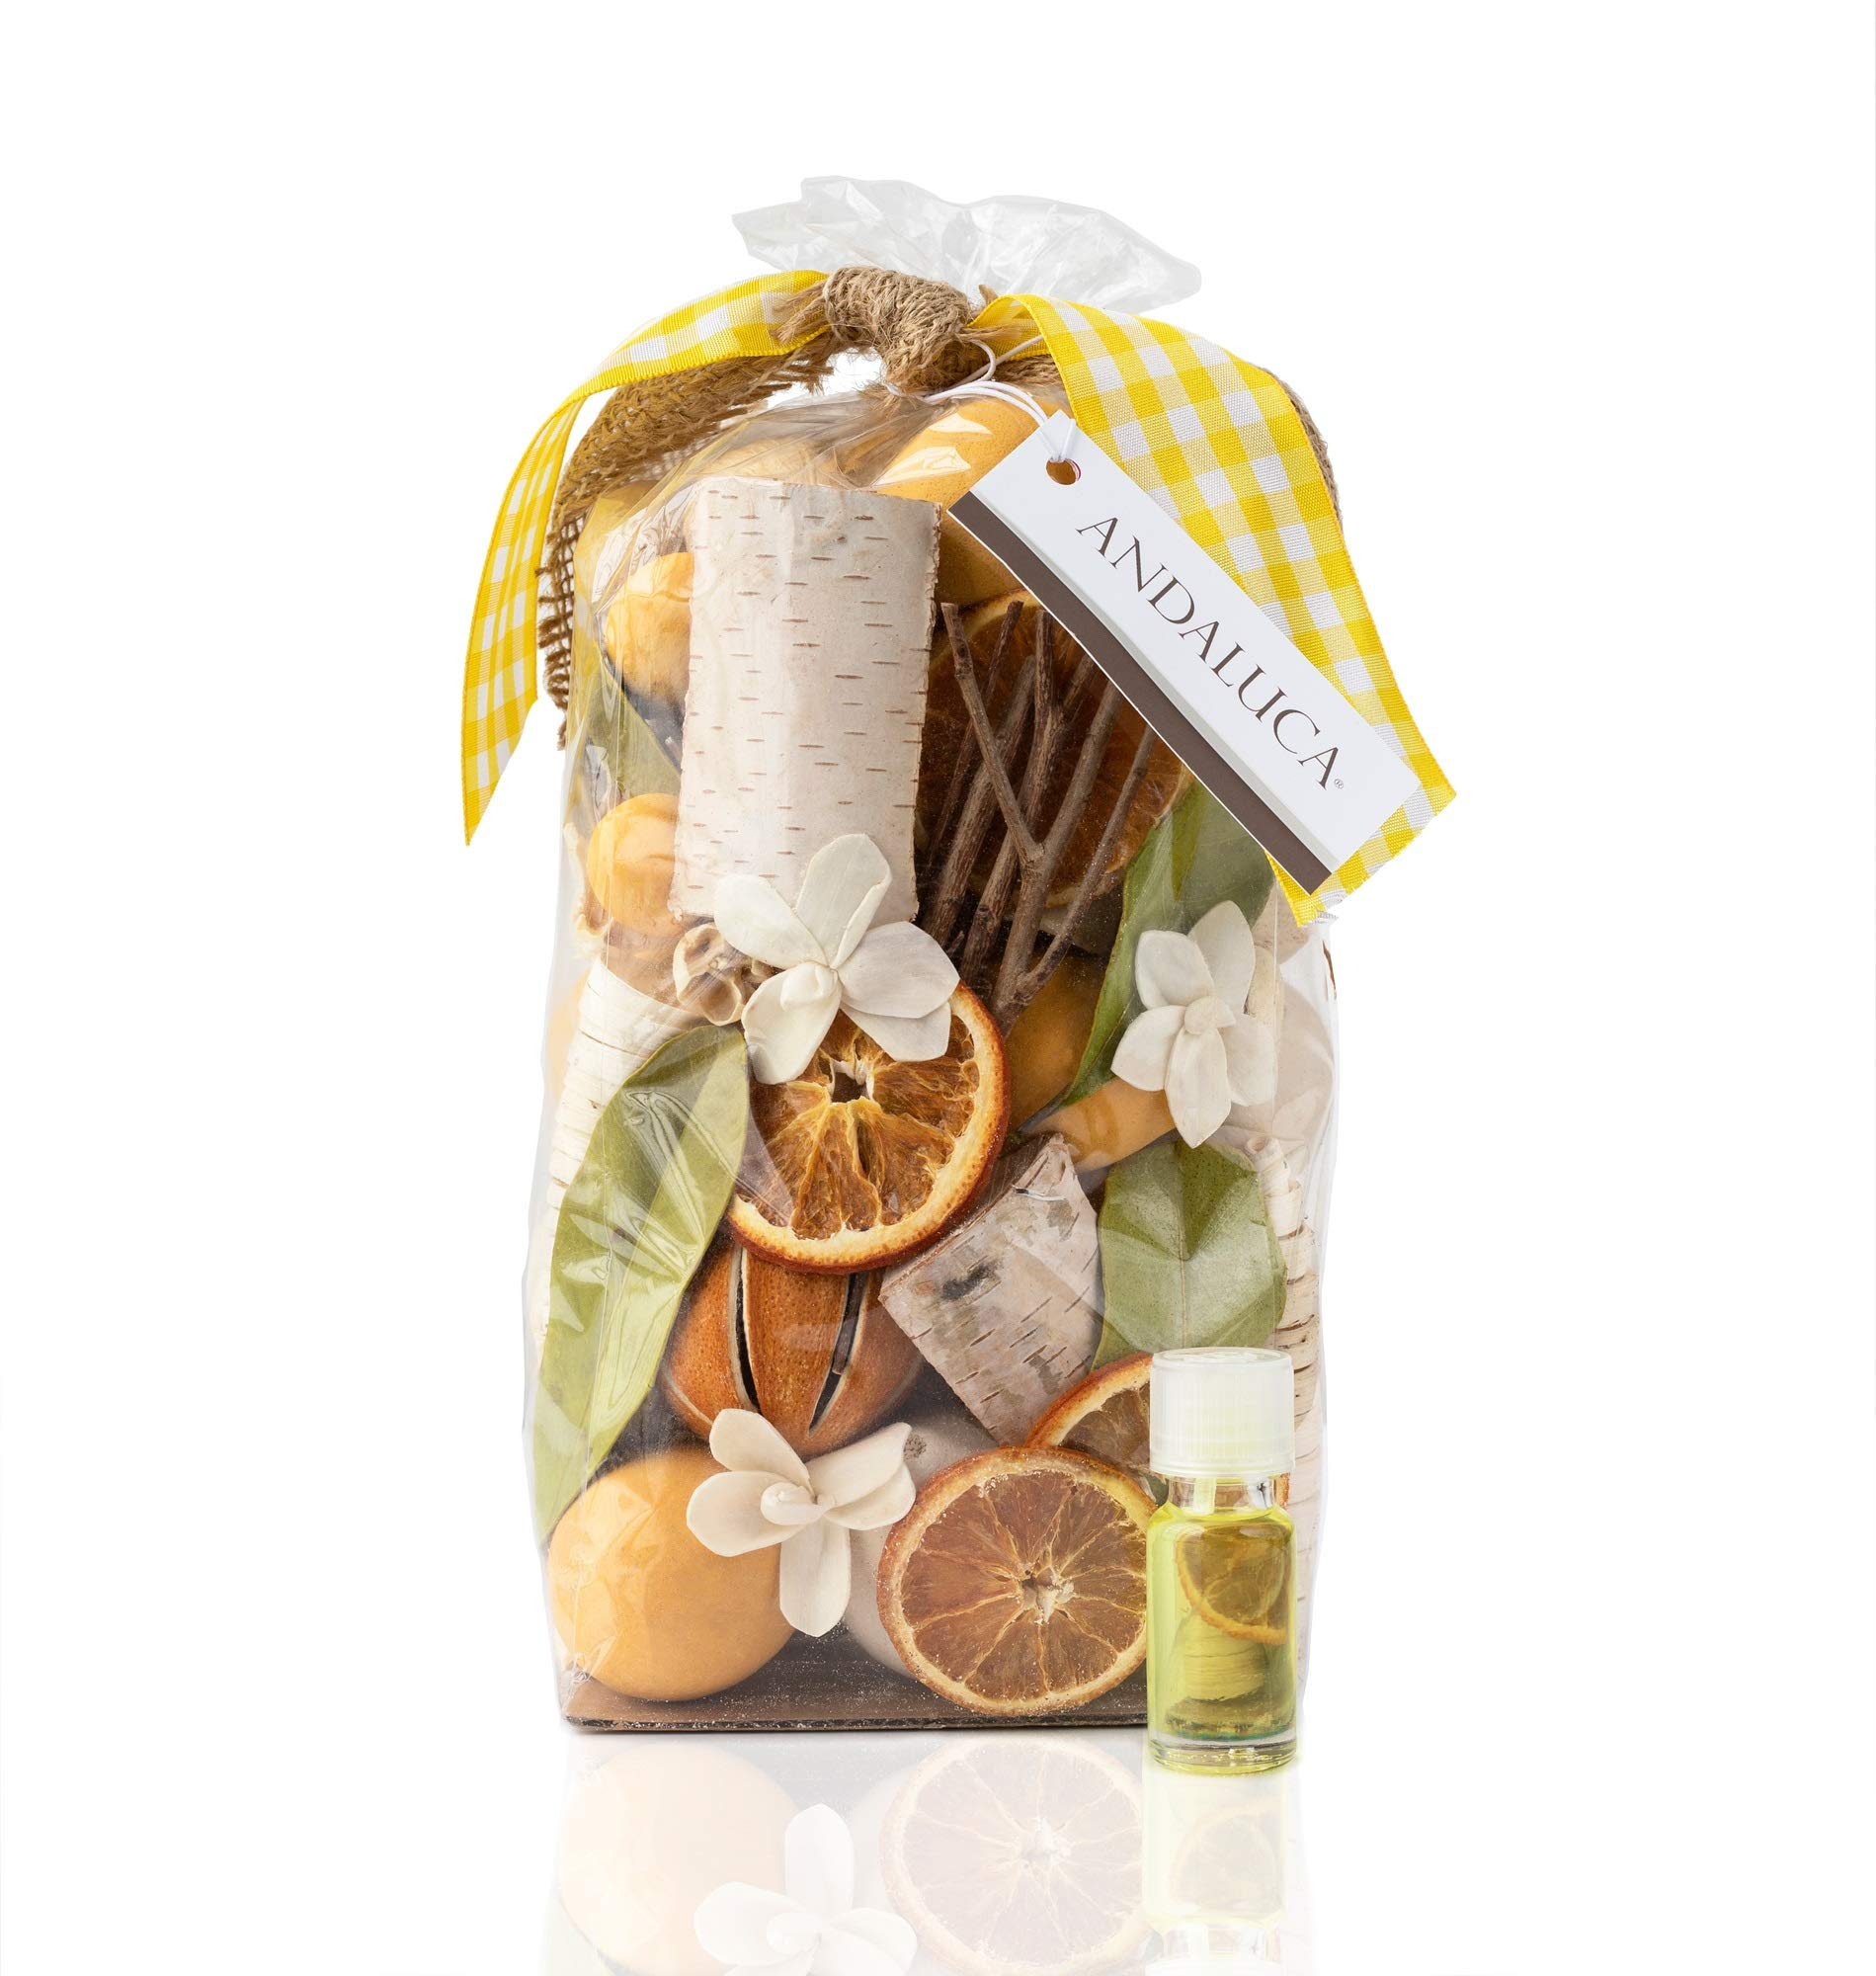 Andaluca Lemon Zest & Thyme Scented Potpourri | Made in California | Large 20 oz Bag + Fragrance Vial by Andaluca (Image #1)